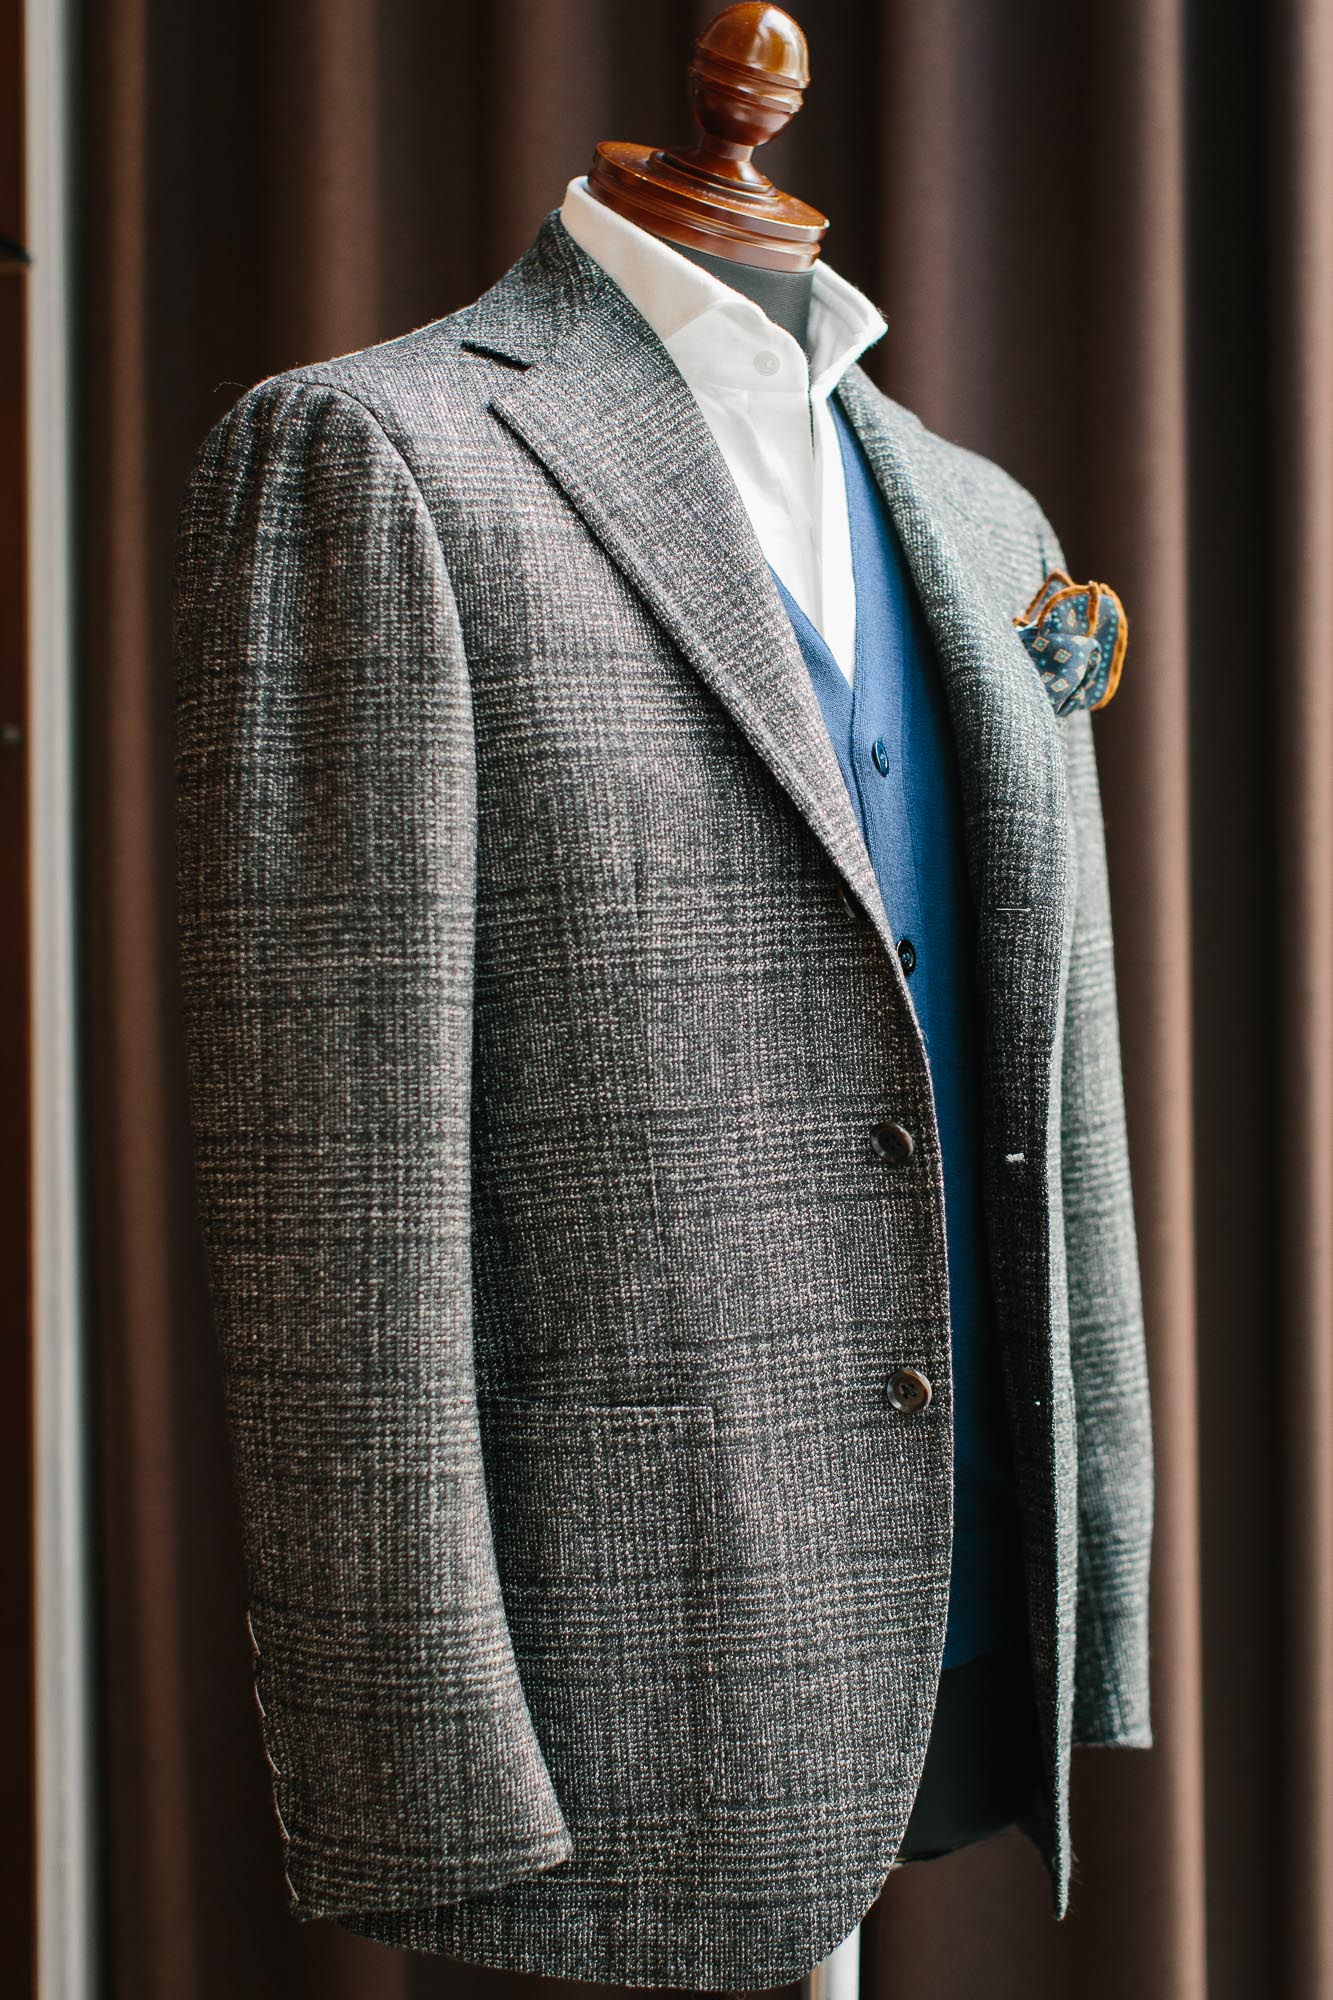 Ring Jacket Suit